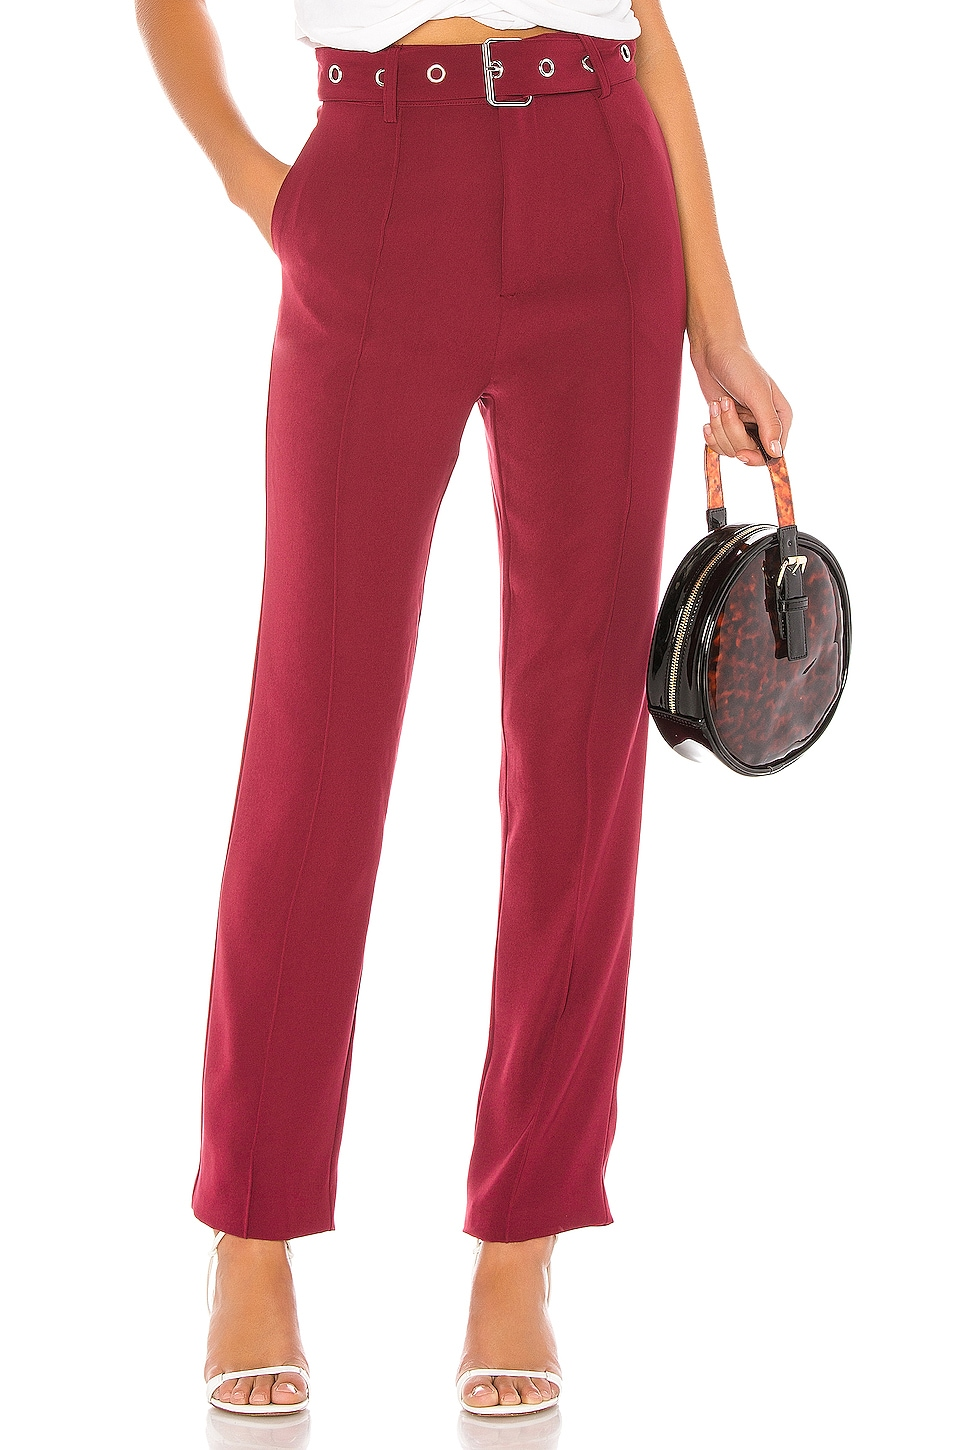 Lovers + Friends Brees Pant in Wine Red